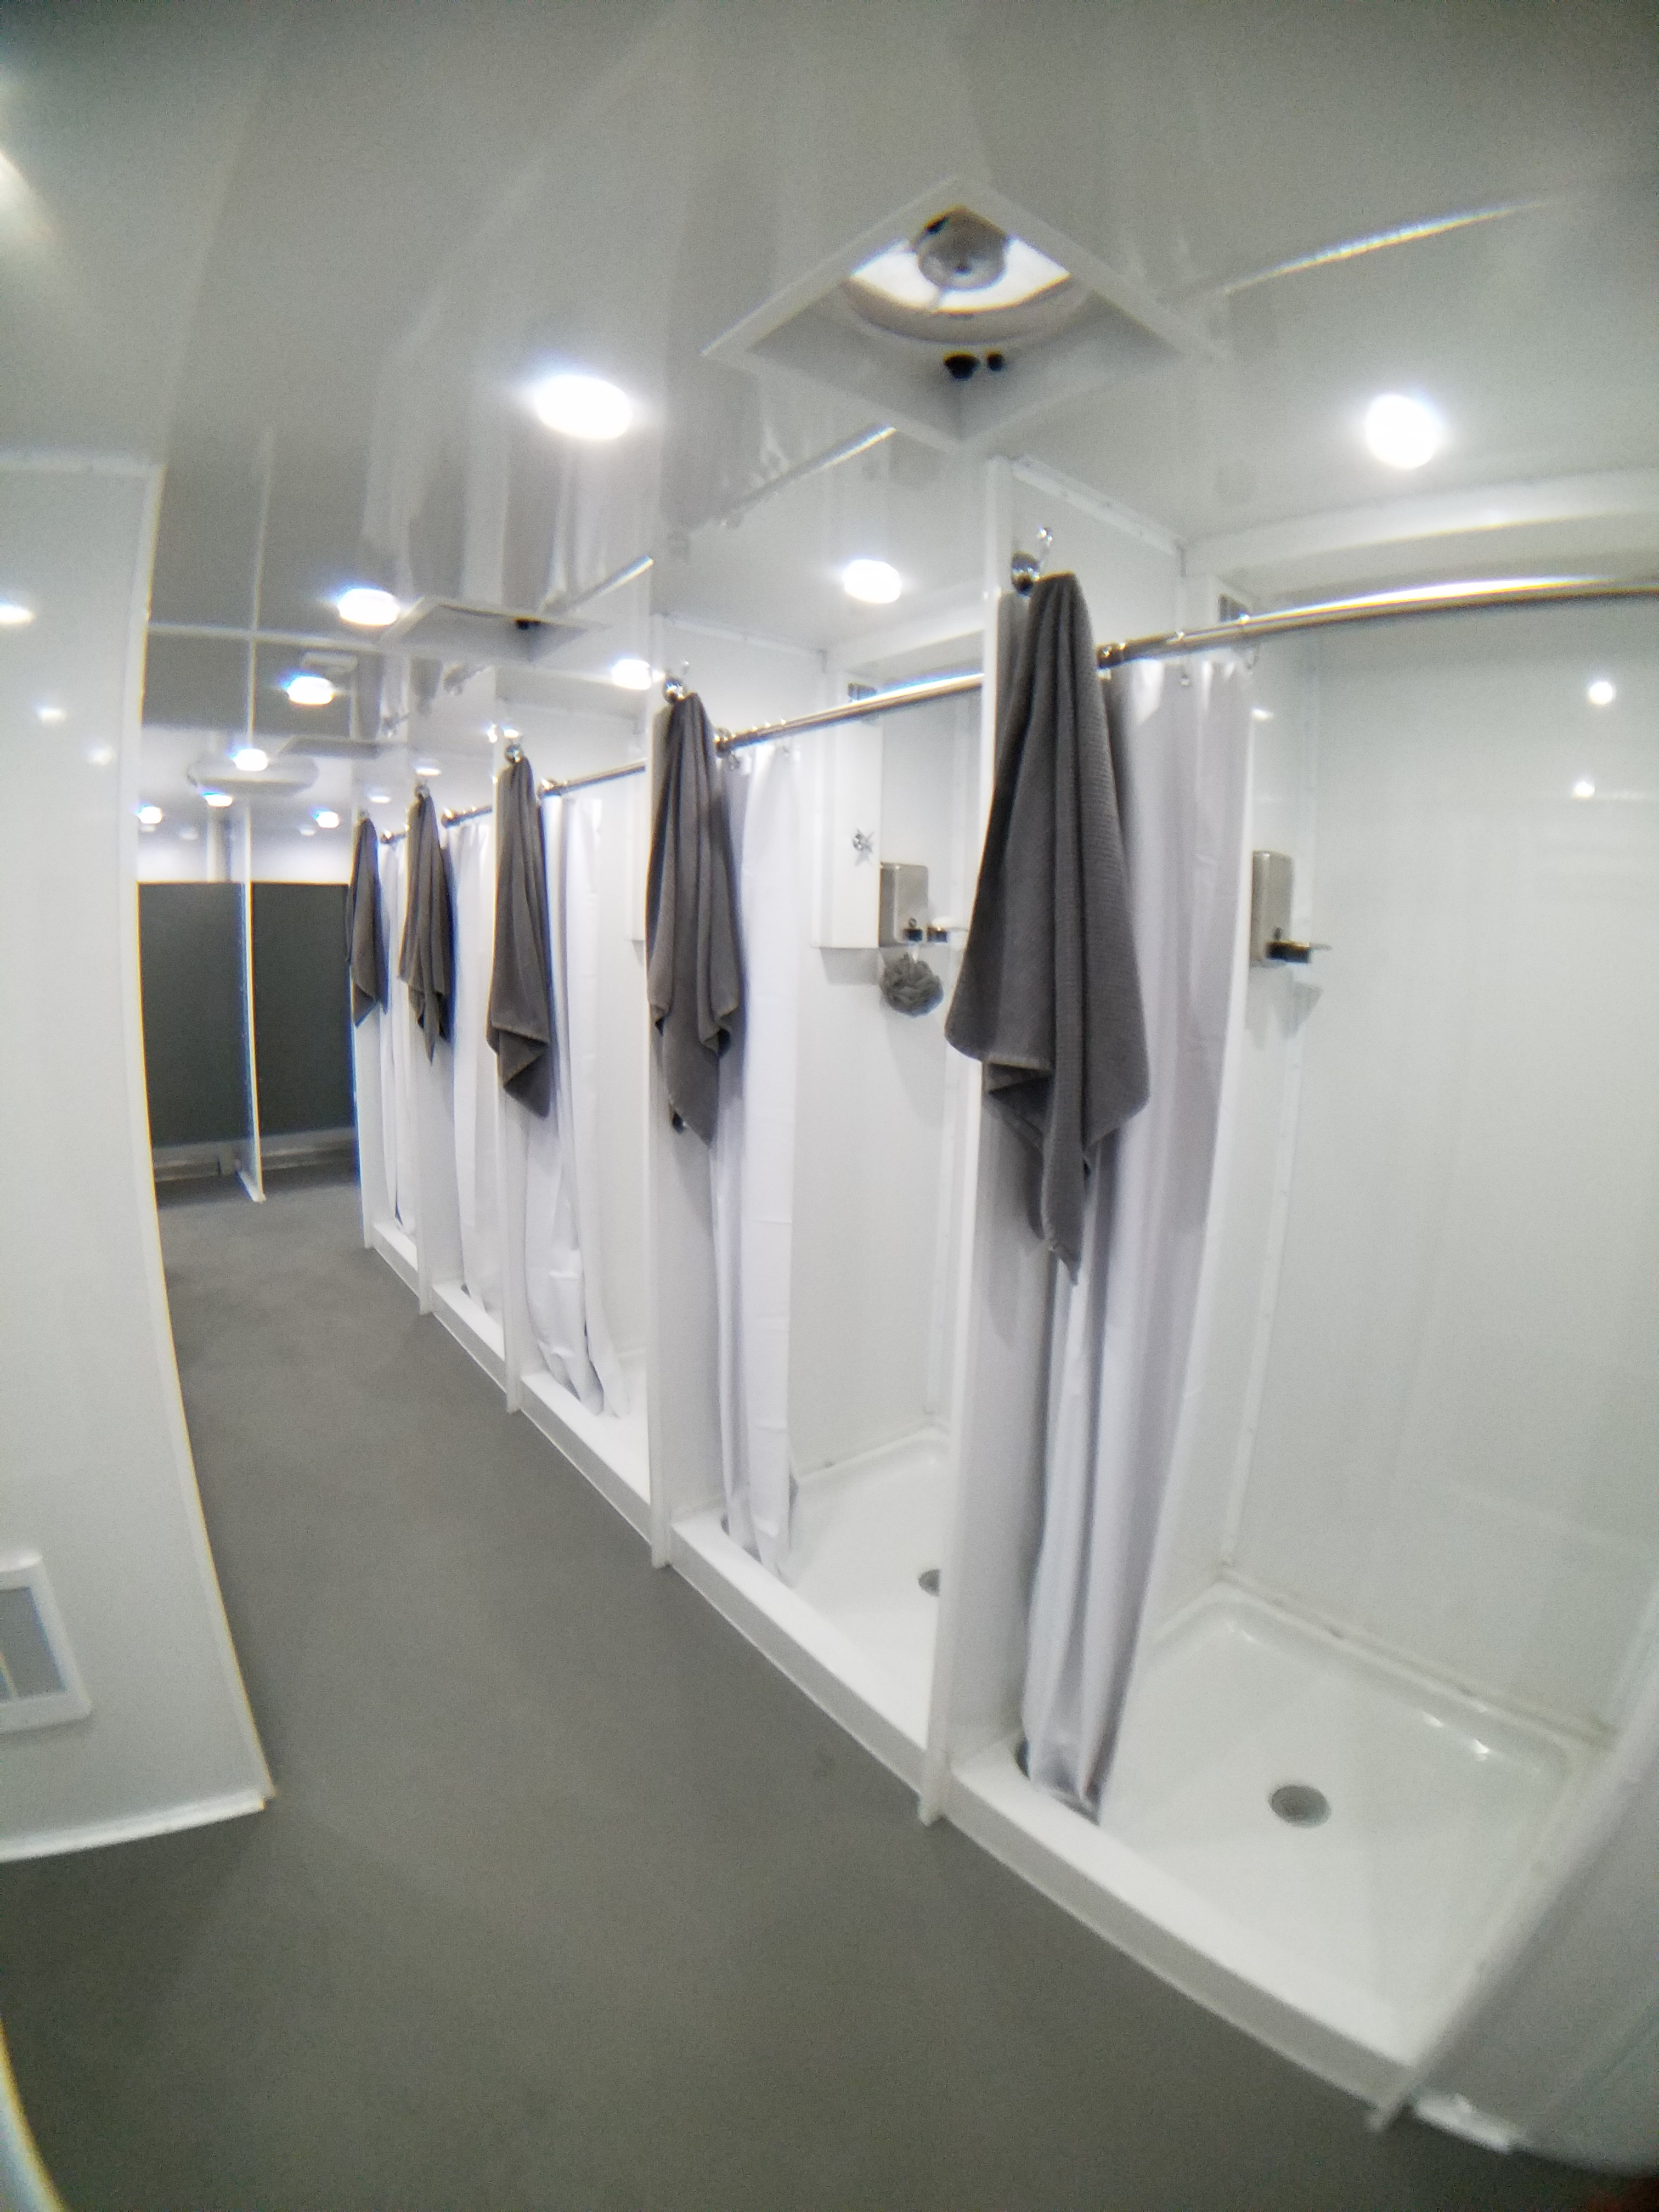 Shower Trailers for the Homeless